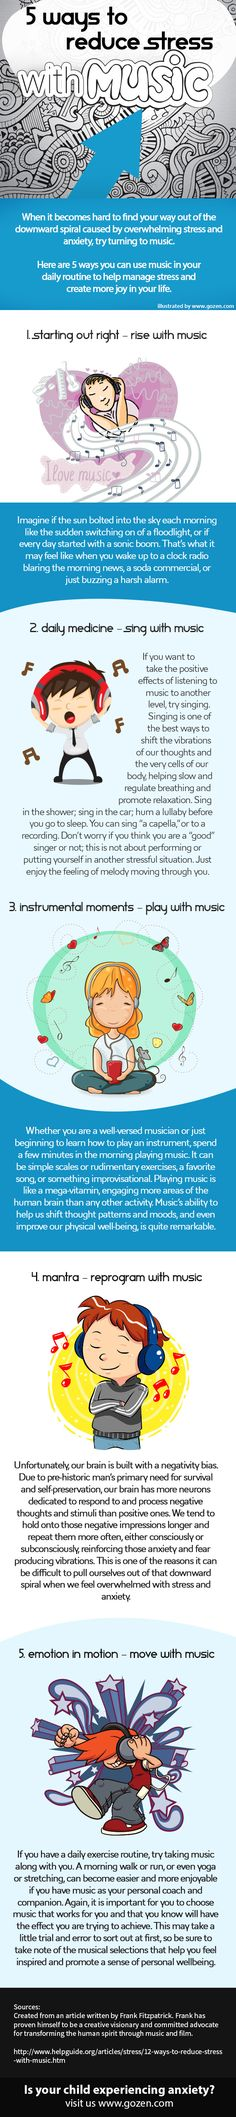 5 Ways to Reduce Stress and Anxiety with Music - Subscribe to my blog at: http://lifeslearning.org/ I provide HIPPA compliant Online (face-to-face) Counseling. Schedule at: https://etherapi.com/therapist/suzanne-apelskog Twitter: @sapelskog. Counselors, FB page: Facebook.com/LifesLearningForCounselors Everyone, FB: www.facebook.com/LifesLearningForEveryone